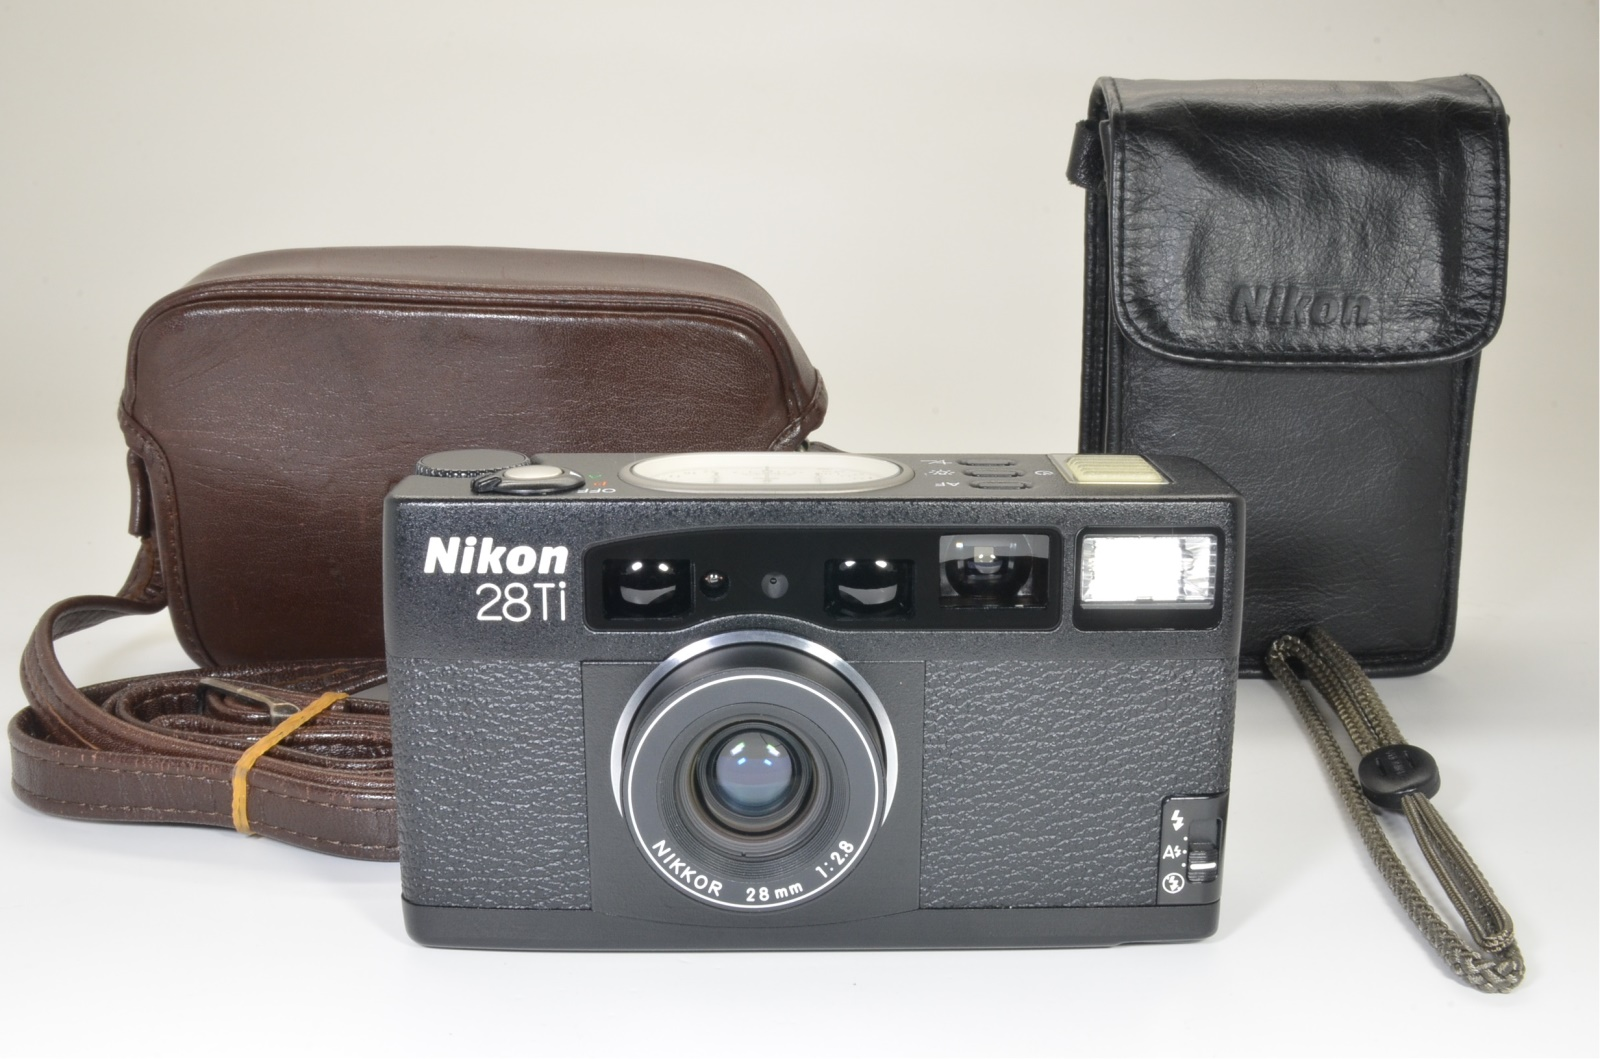 nikon 28ti p&s 35mm film camera lens 28mm f2.8 shooting tested